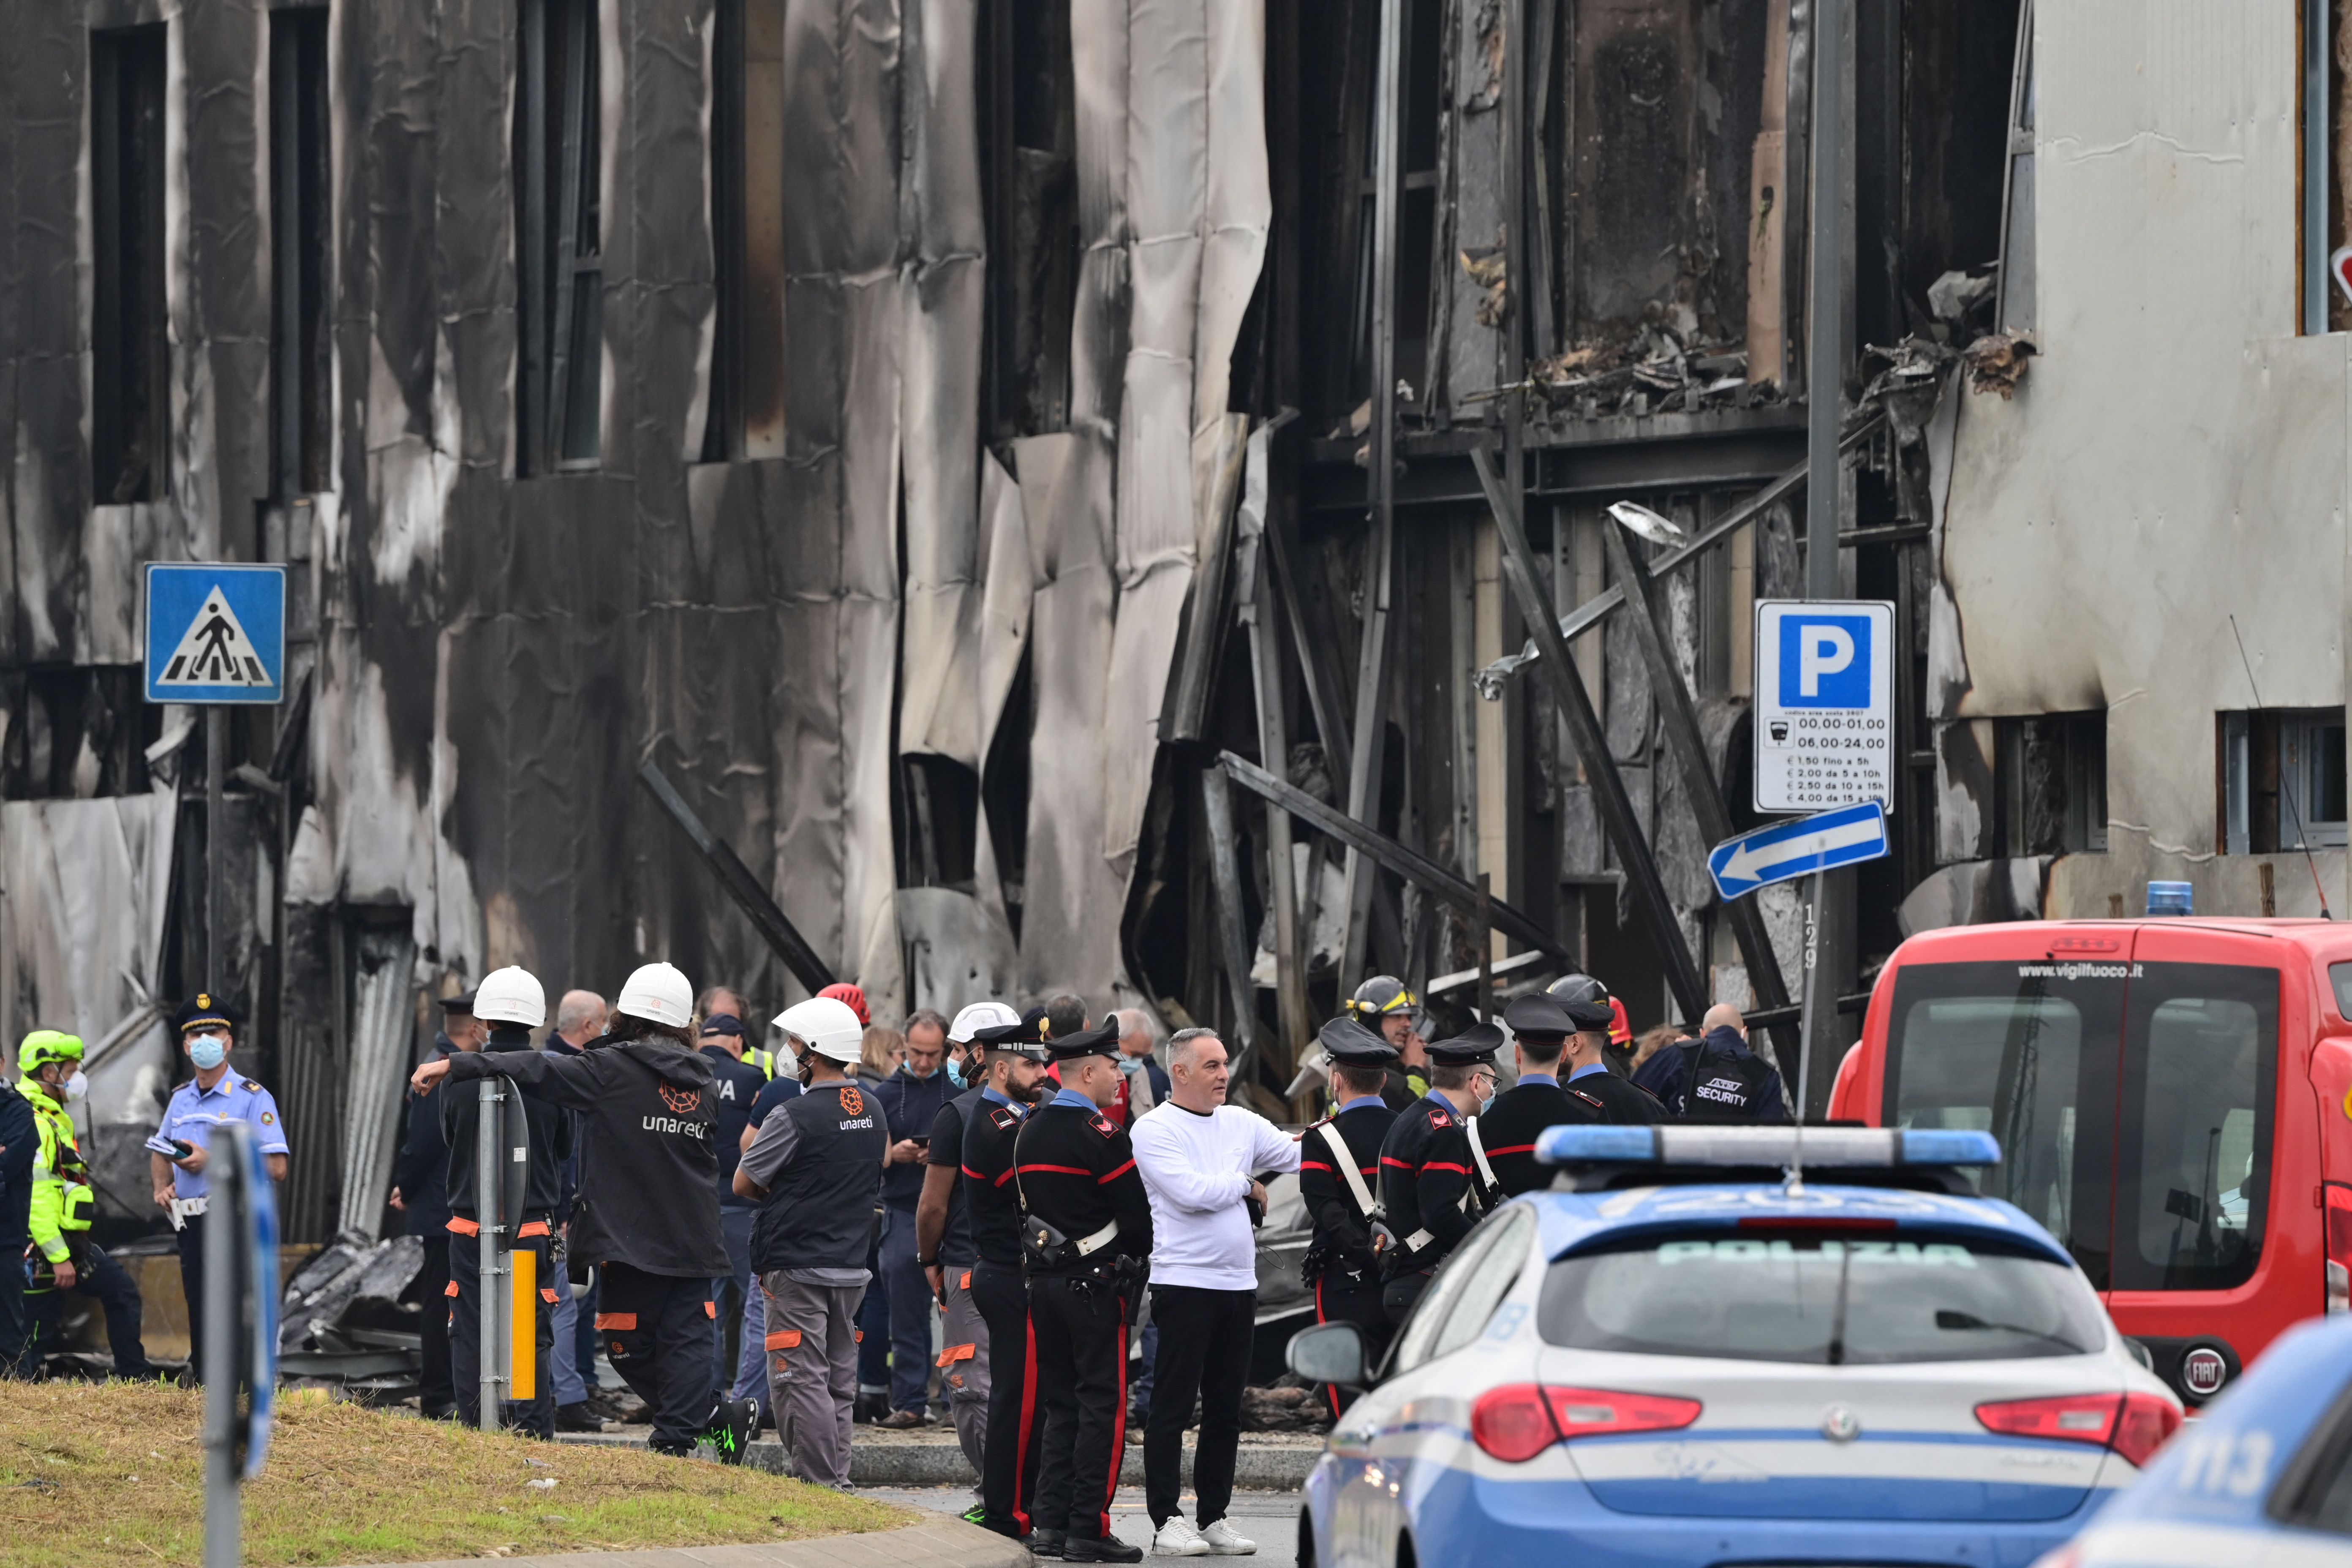 Police and rescue teams stand outside an apparently vacant office building where a small plane carrying five passengers and the pilot crashed in the Milan suburb of San Donato on October 3, 2021. (Photo by MIGUEL MEDINA/AFP via Getty Images)